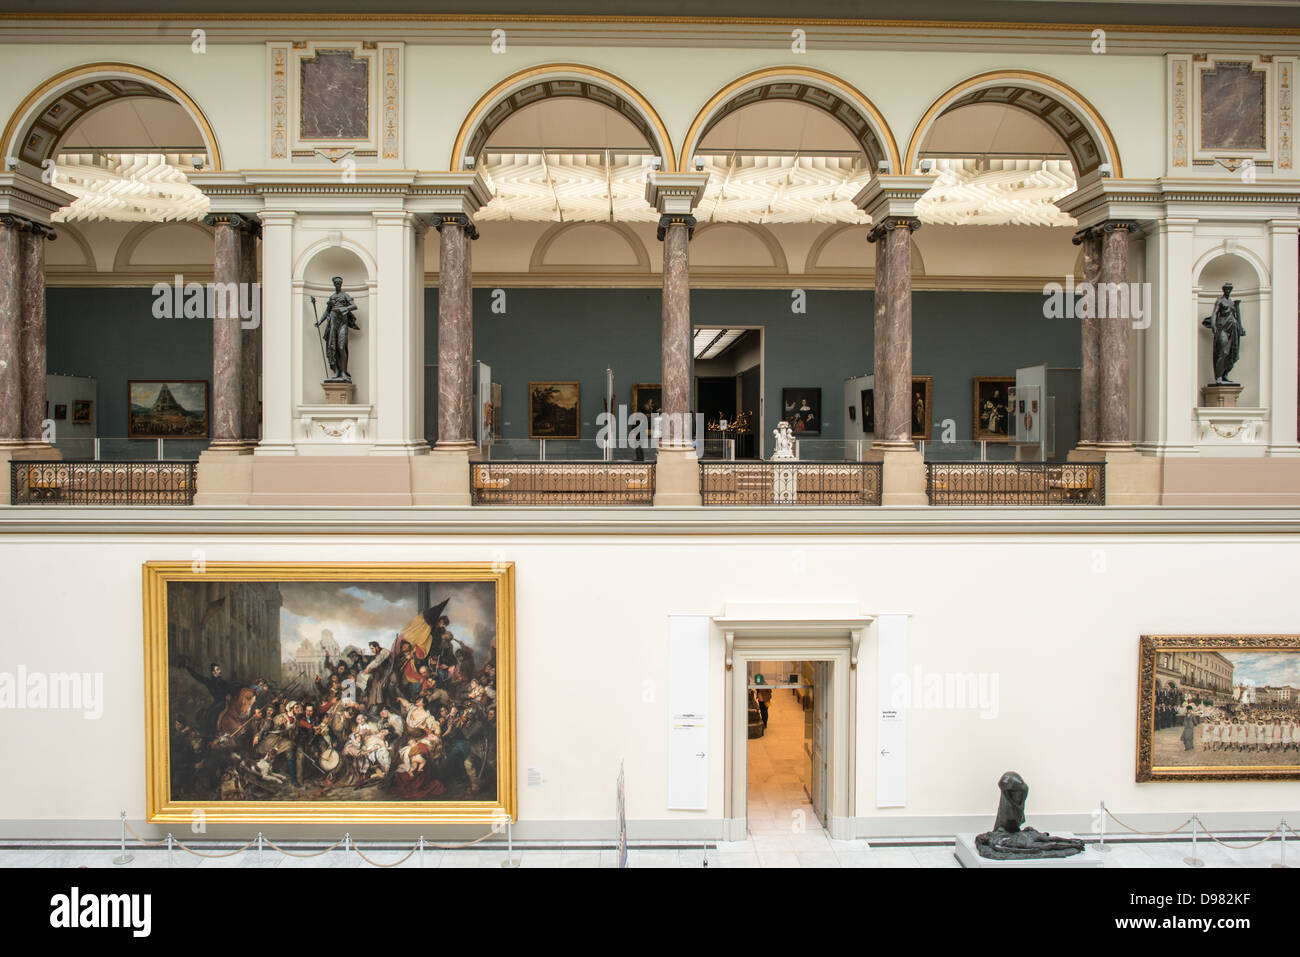 BRUSSELS, Belgium - The main hall at the Royal Museums of Fine Arts in Belgium (in French, Musées royaux des - Stock Image